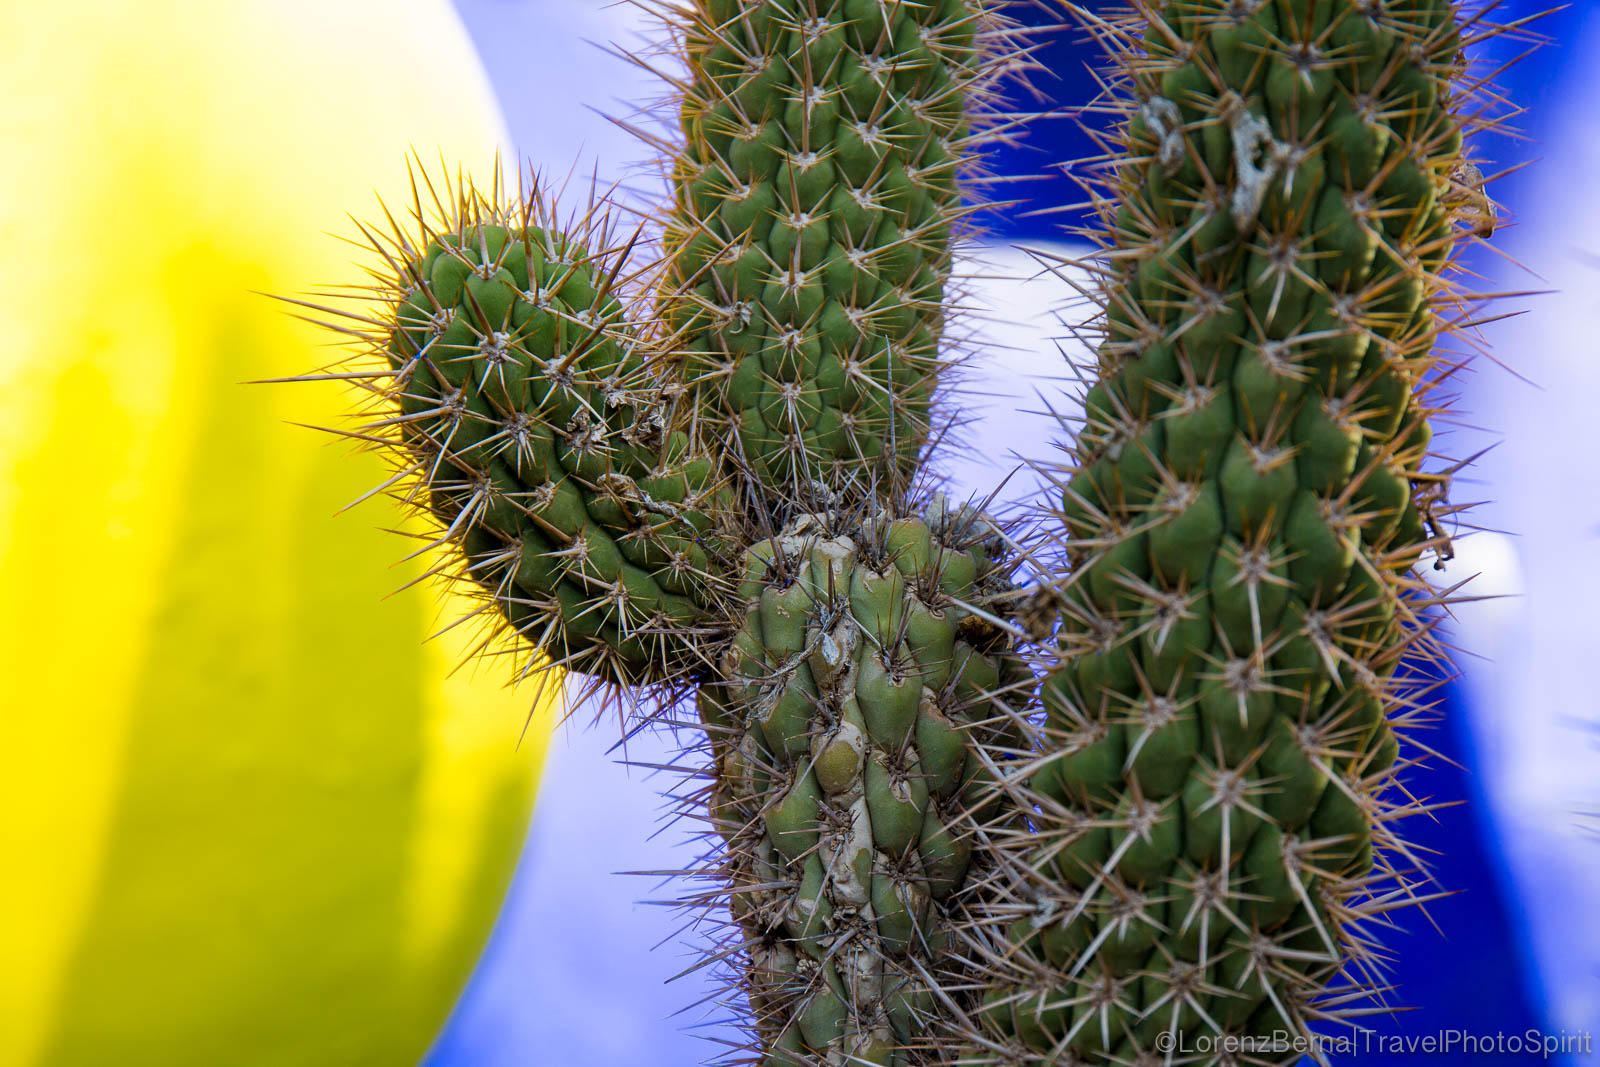 Close up of a cactus inside the Majorelle gardens of Marrakech